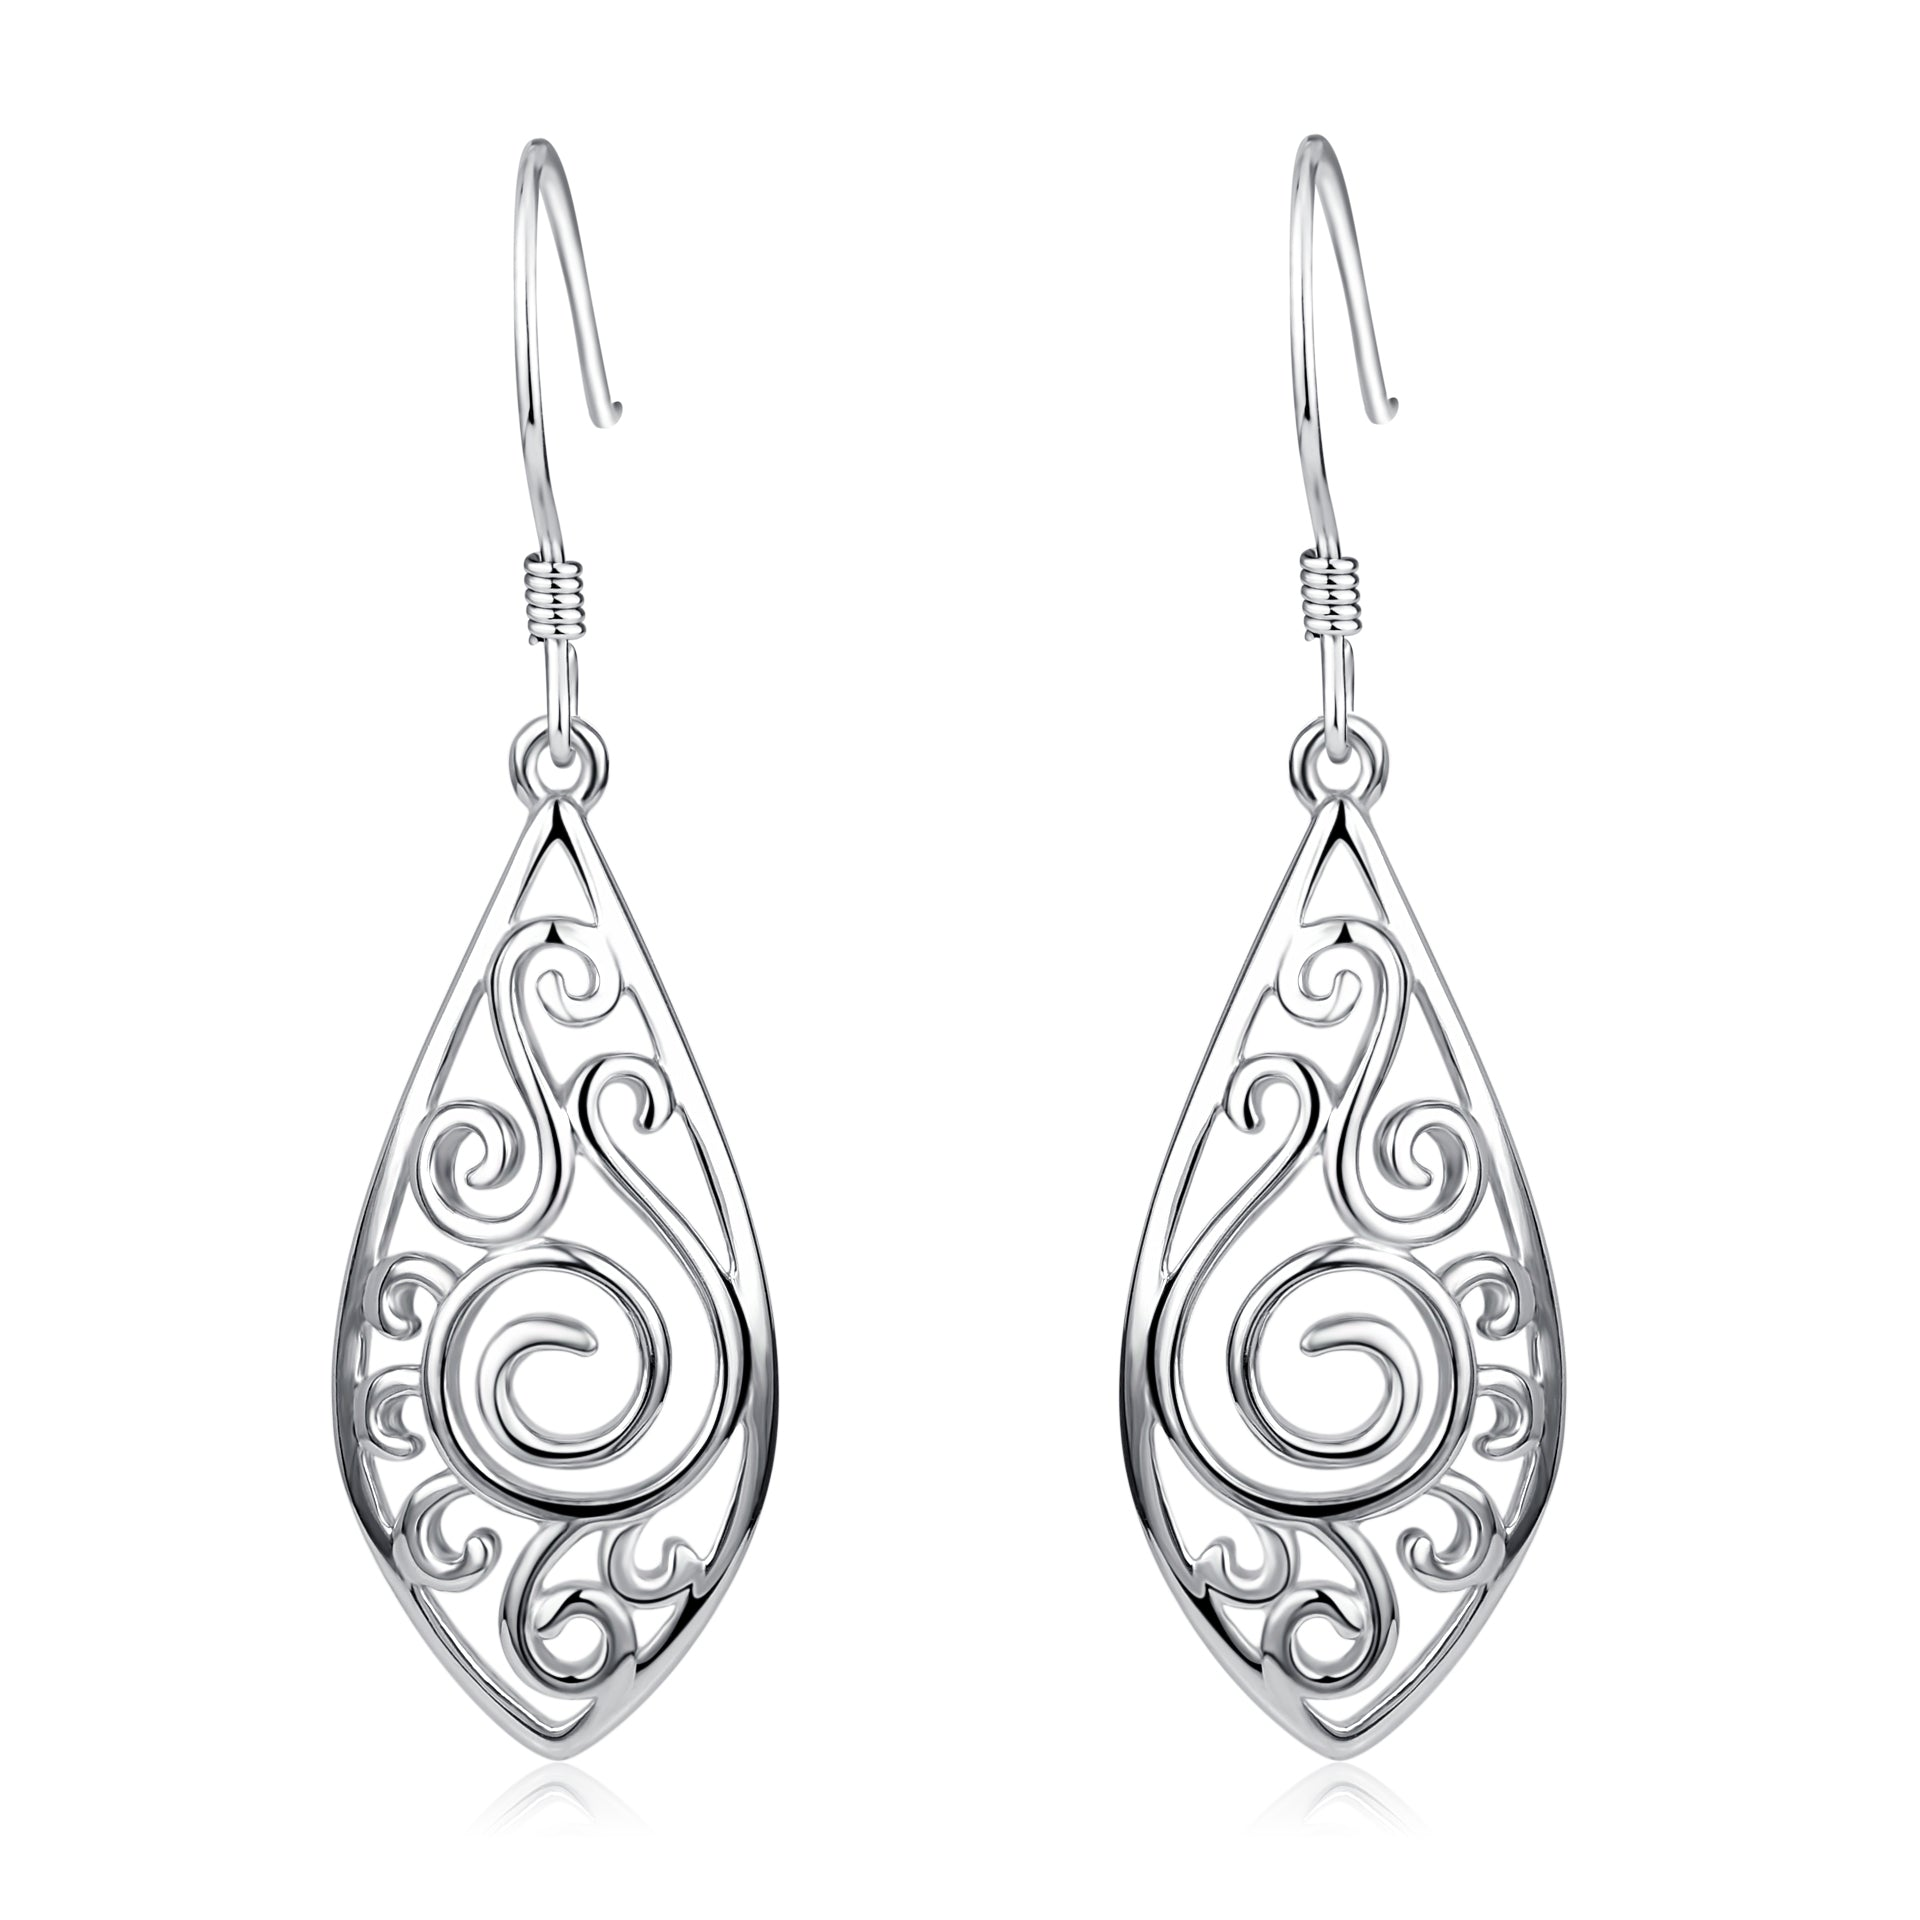 Silver Leaf Drop Earrings New Design Pendant Fashionable Earrings